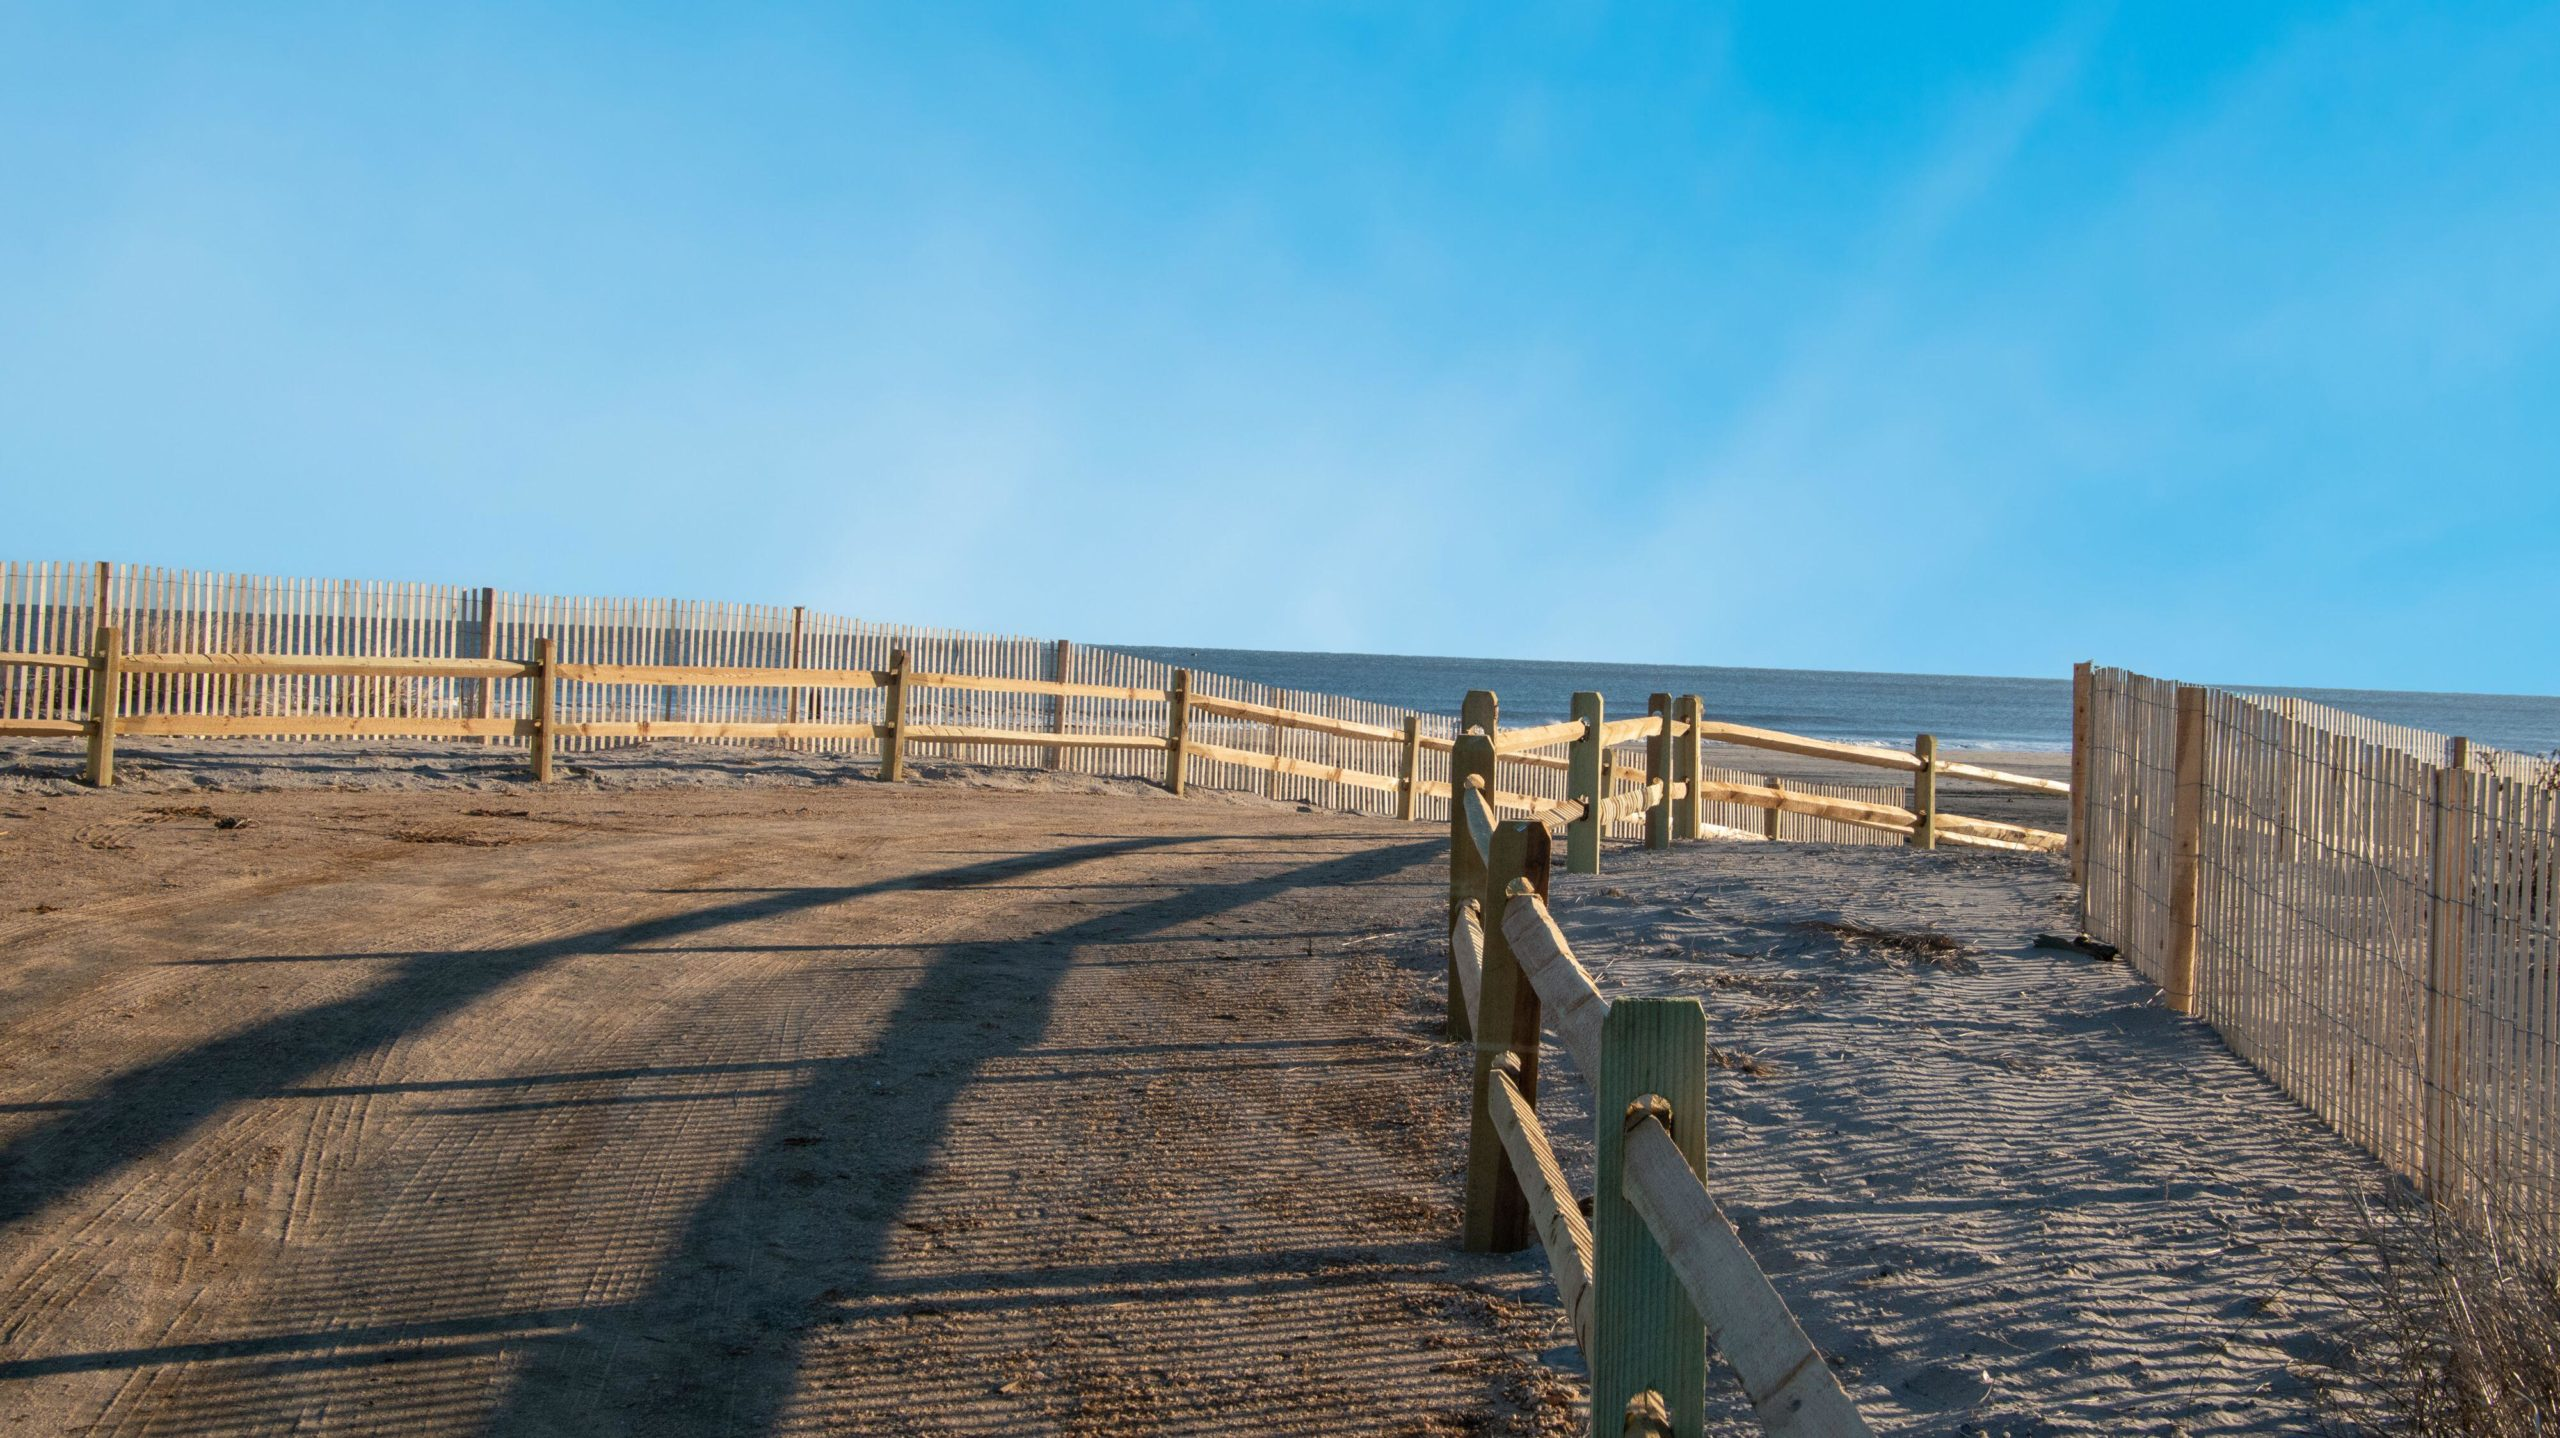 Curved sandy path to the ocean and beach lines with a wooden split rail fence and an erosion slat fence